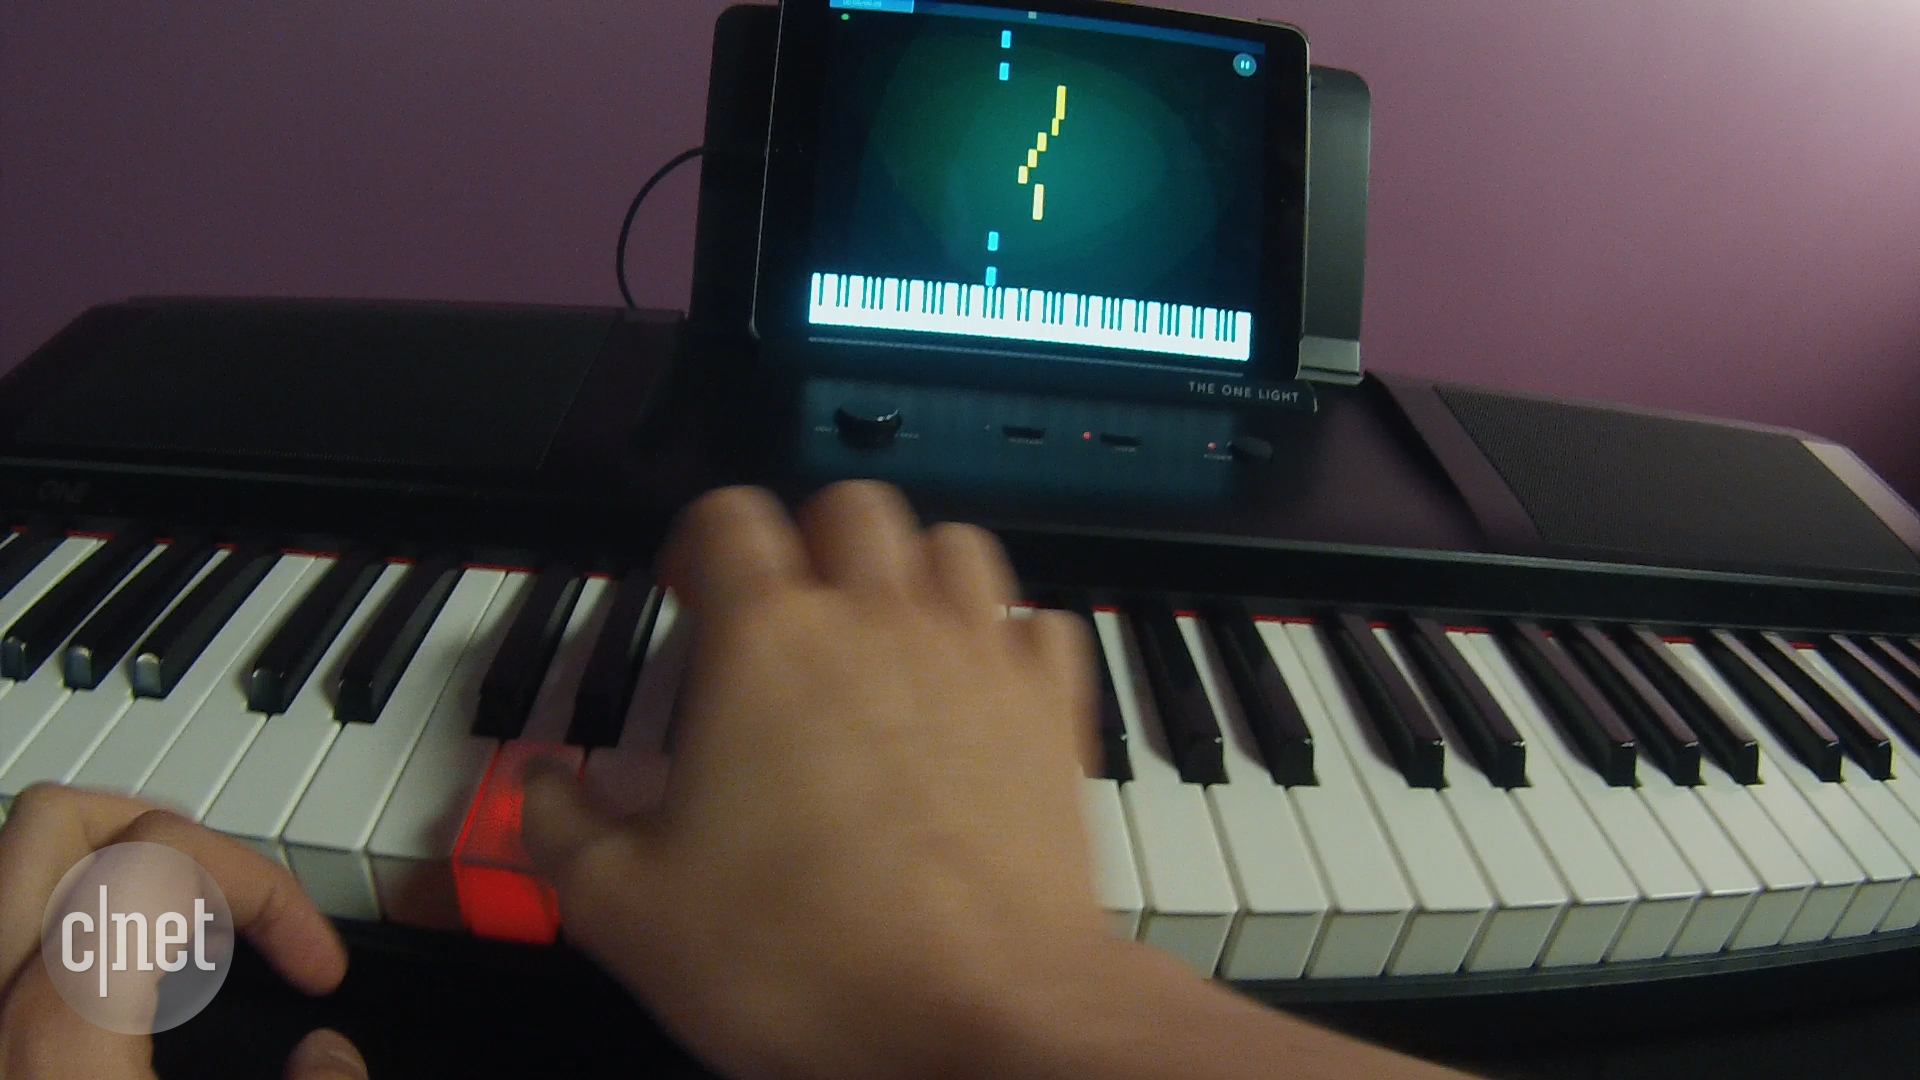 Video: Here's an app-powered keyboard that's great for kids